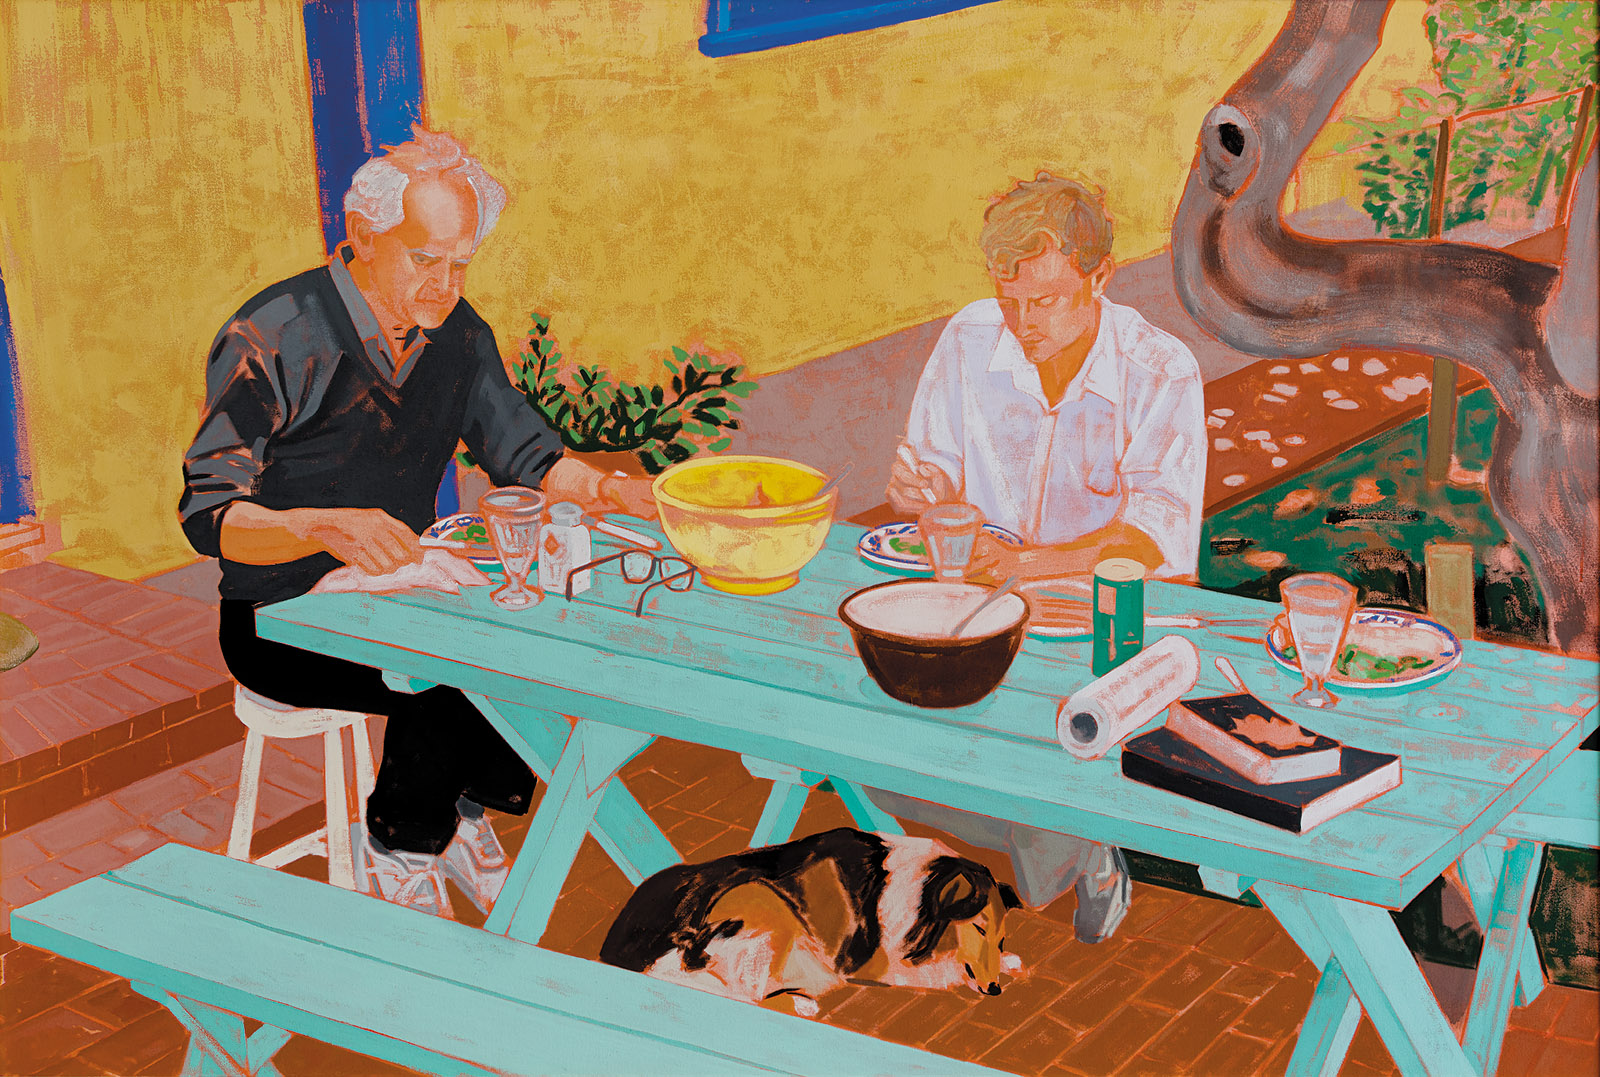 Patricia Patterson: The Conversation (Manny and Steve at the Table), 1990